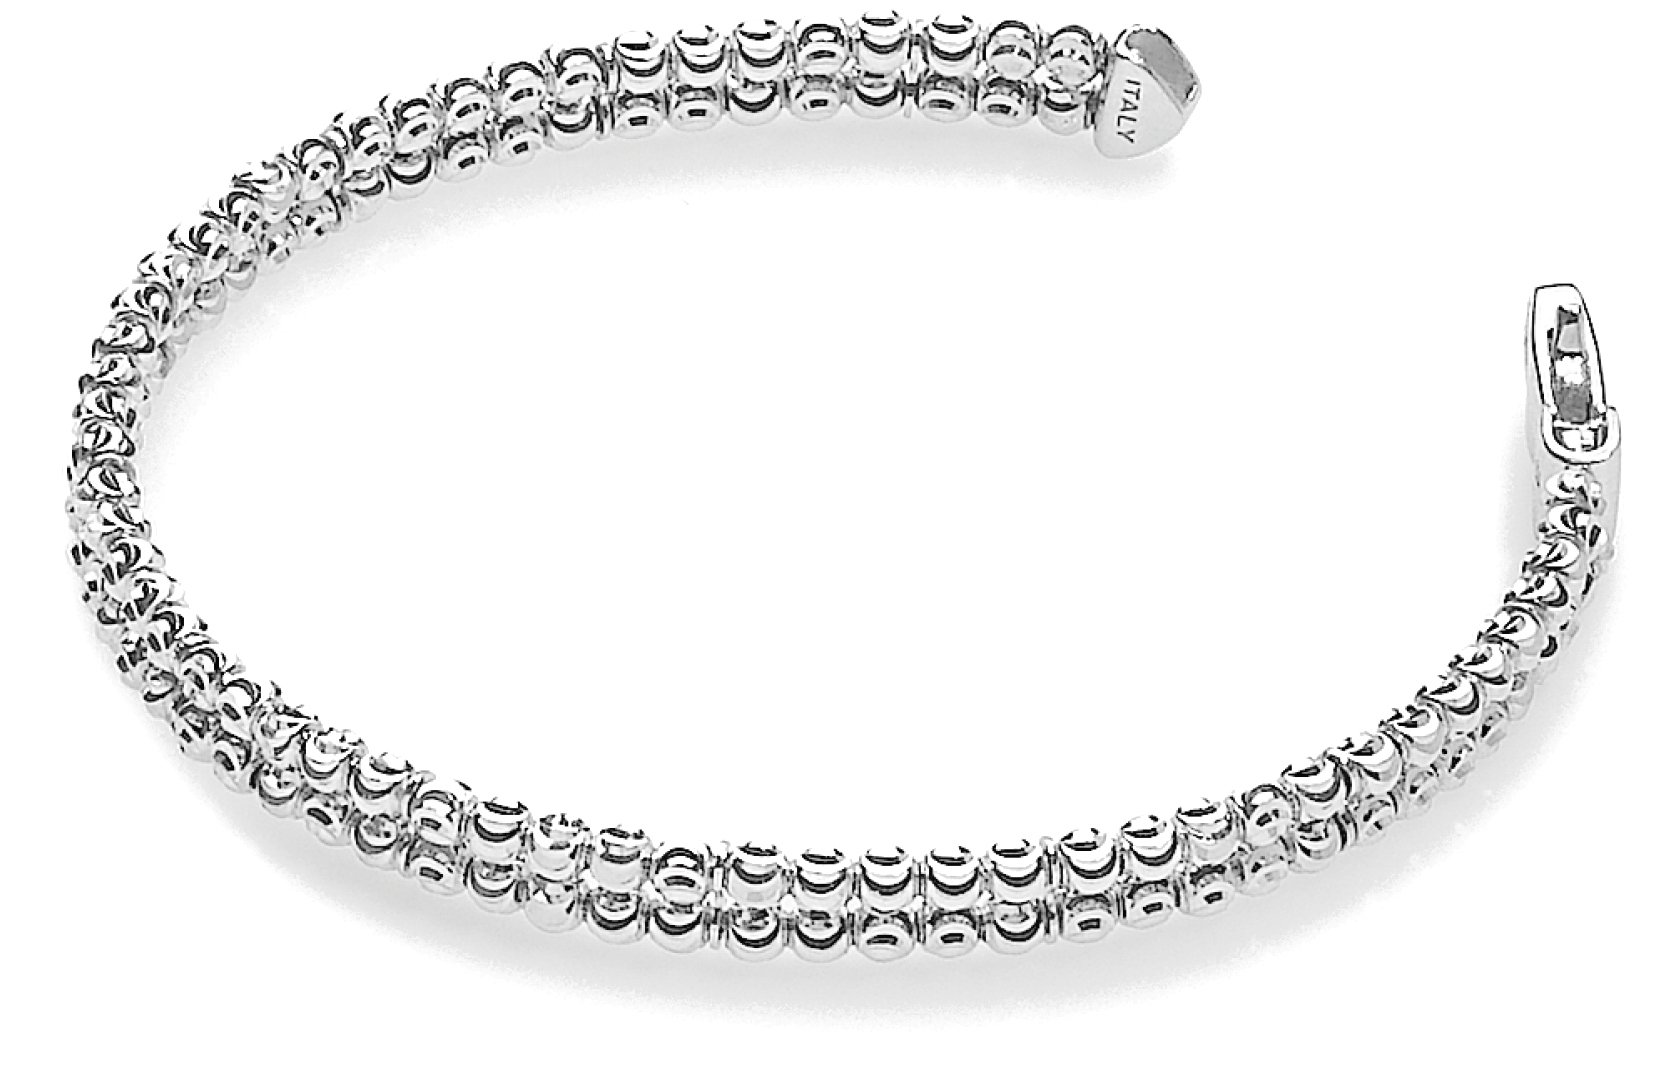 Officina Bernardi - Moon Collection - Two Row Bracelet (2 Color Choice) - Italian 925 Sterling Silver (sterling-silver, 8 Inches)